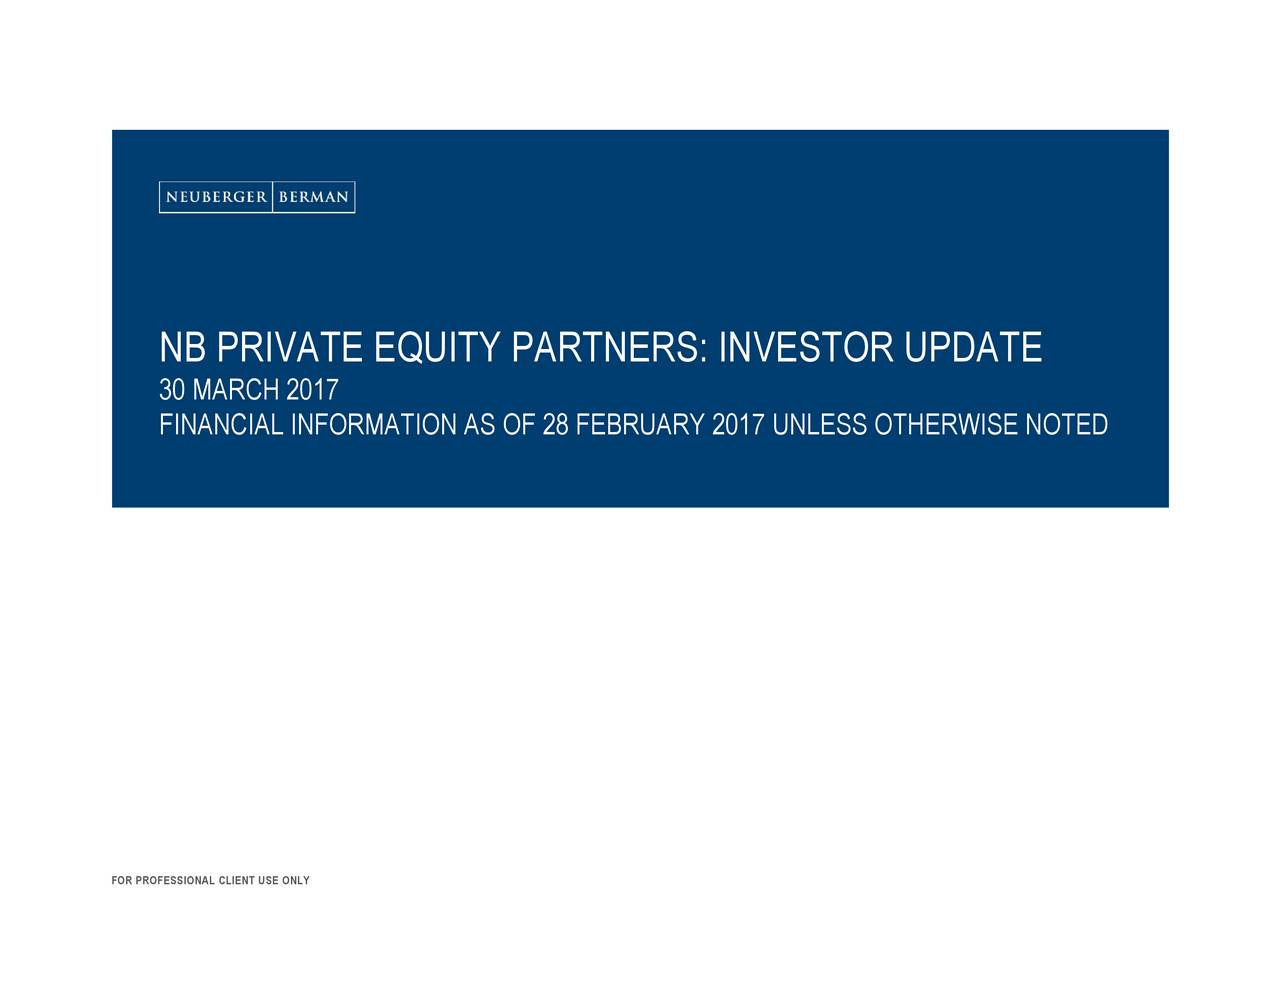 NB3PFIRNCI01NFOUMATIONAROFNE8RS: INVESTOR UPDATE FOR PROFESSIONAL CLIENT USE ONLY